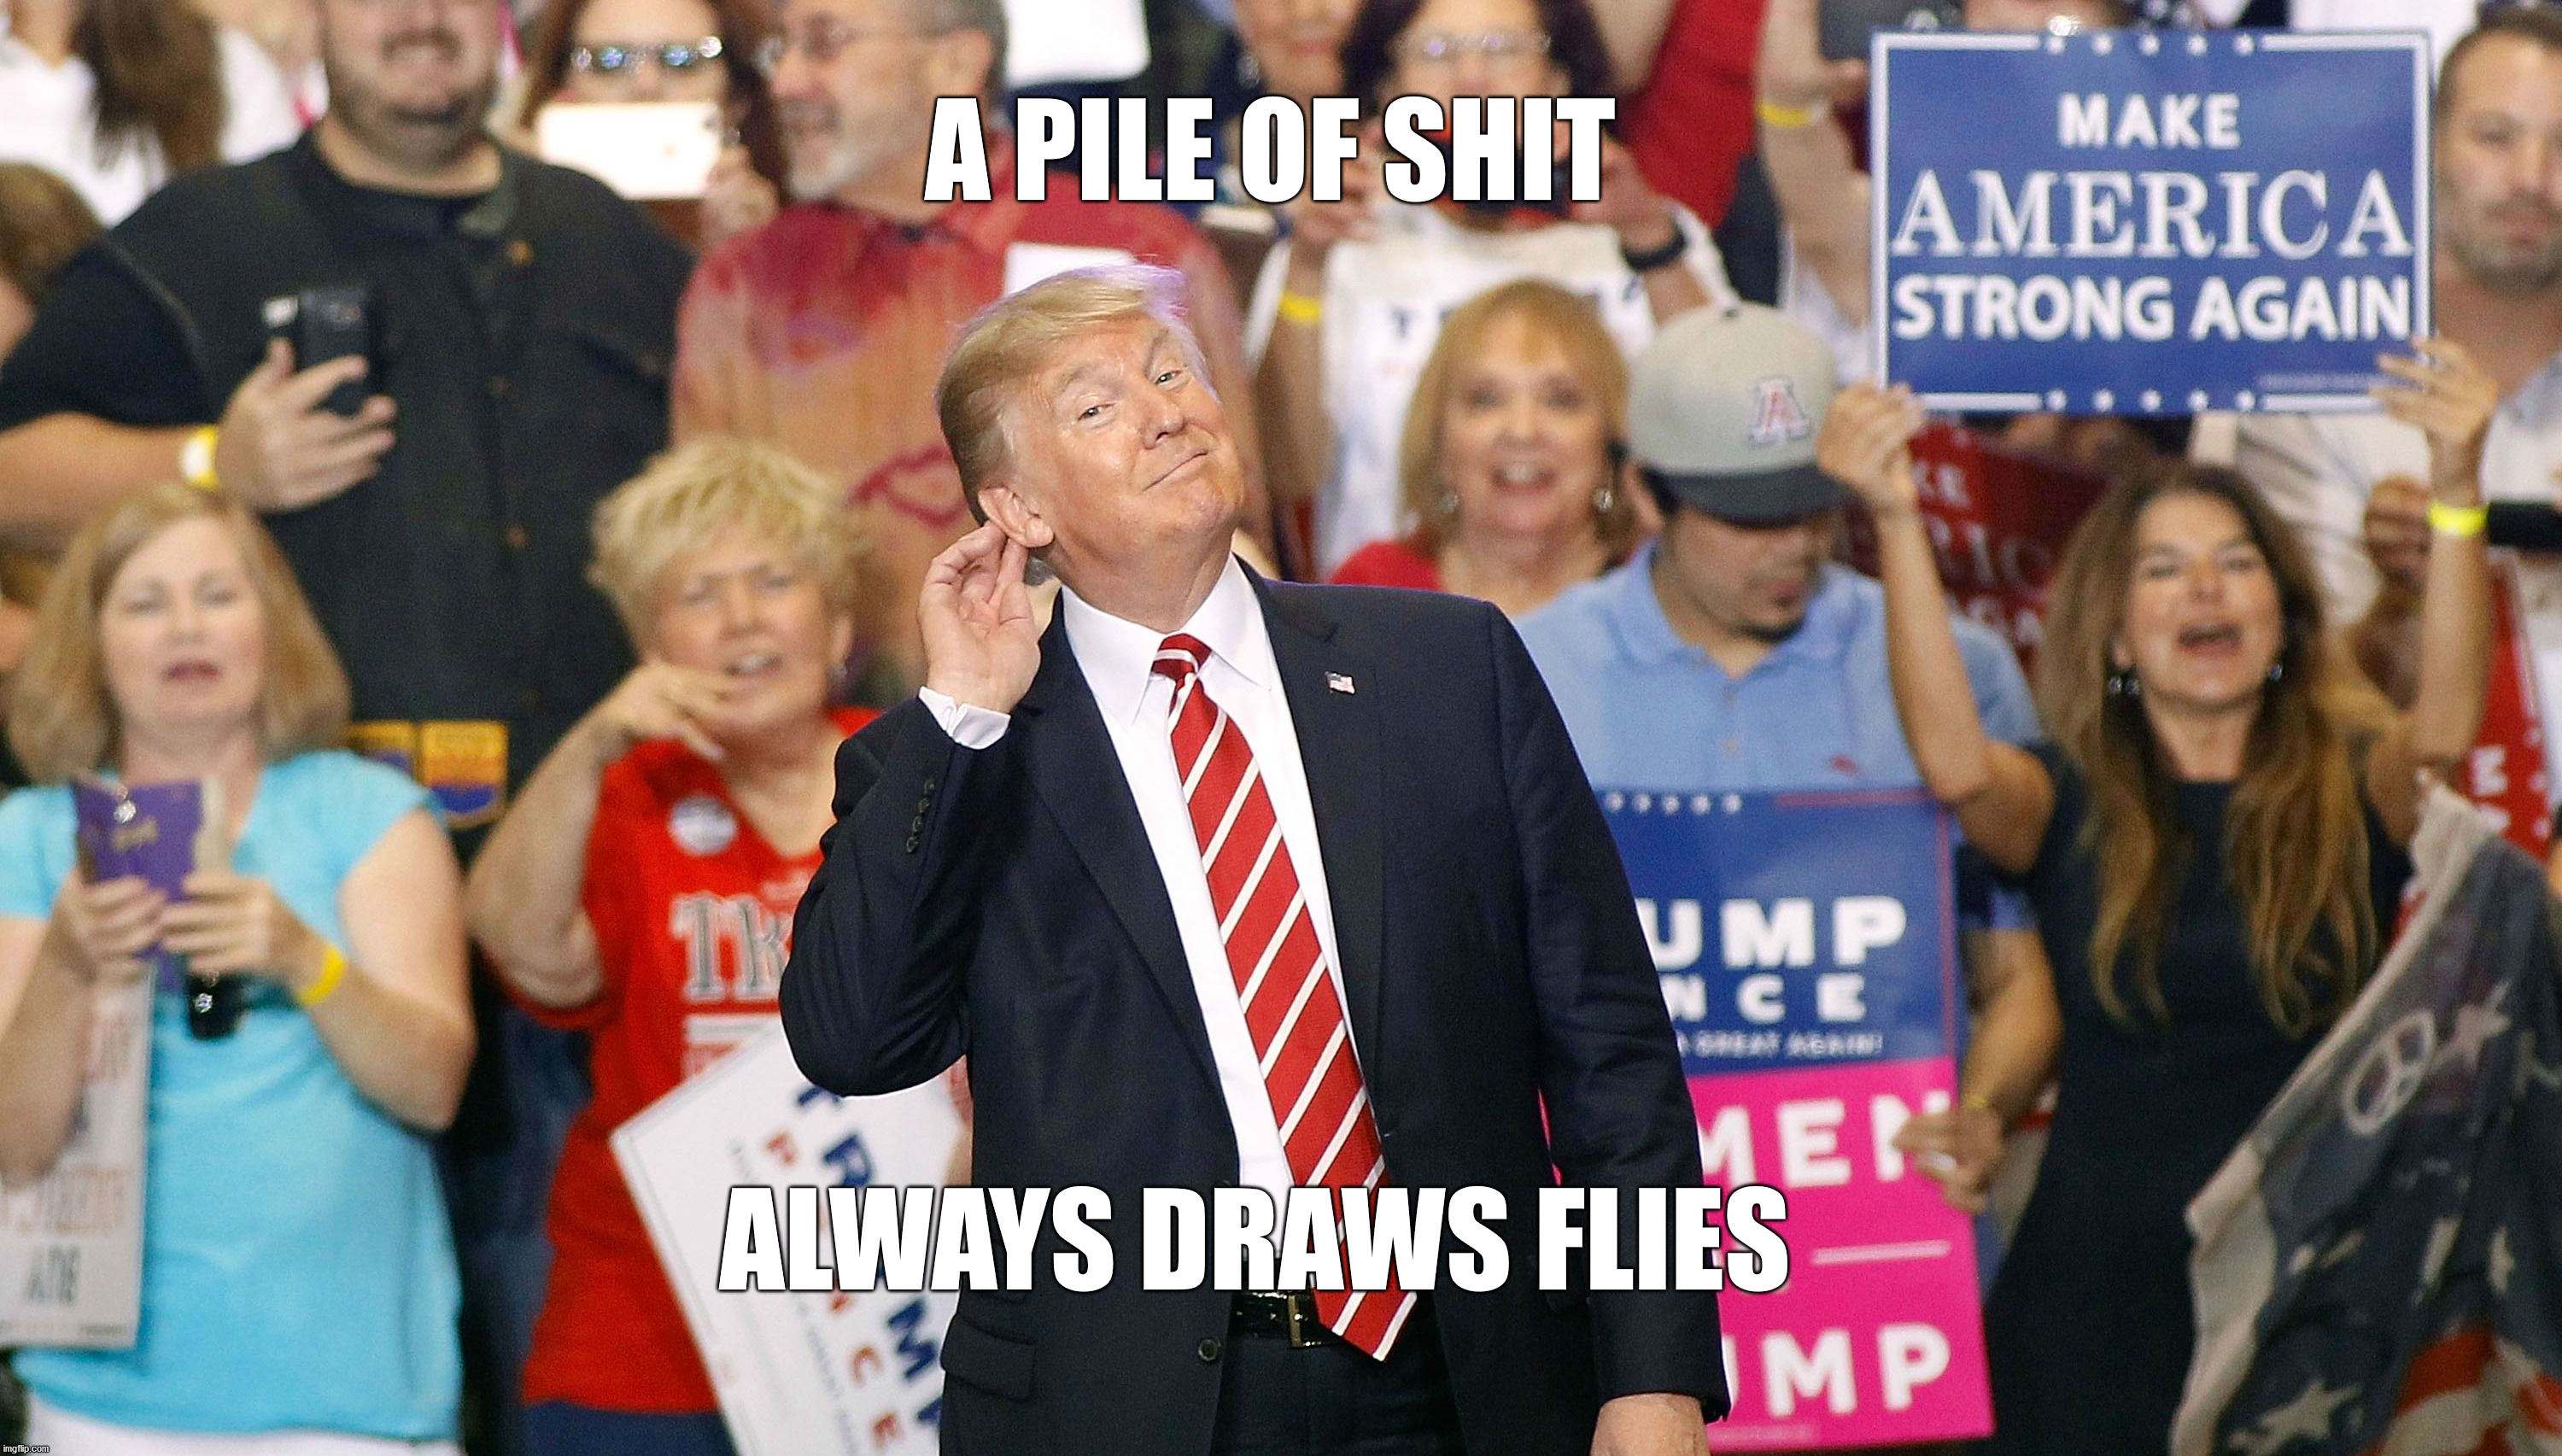 A PILE OF SHIT ALWAYS DRAWS FLIES |  A PILE OF SHIT; ALWAYS DRAWS FLIES | image tagged in pos,flies,trump,rally | made w/ Imgflip meme maker